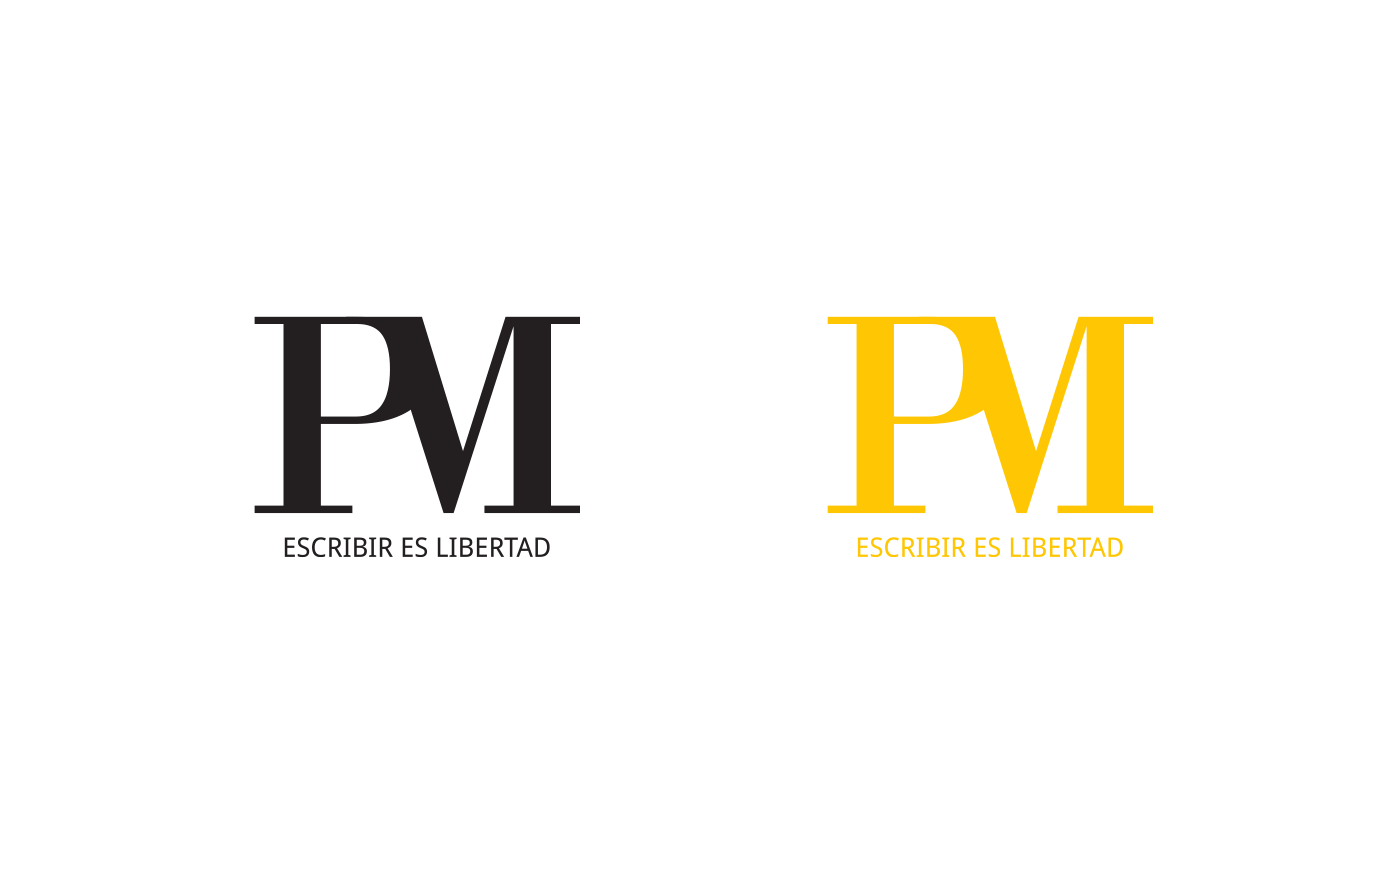 https://i0.wp.com/alemartir.com/ale/wp-content/uploads/2020/10/alemartir-movimiento-pm-logo.png?fit=1400%2C875&ssl=1